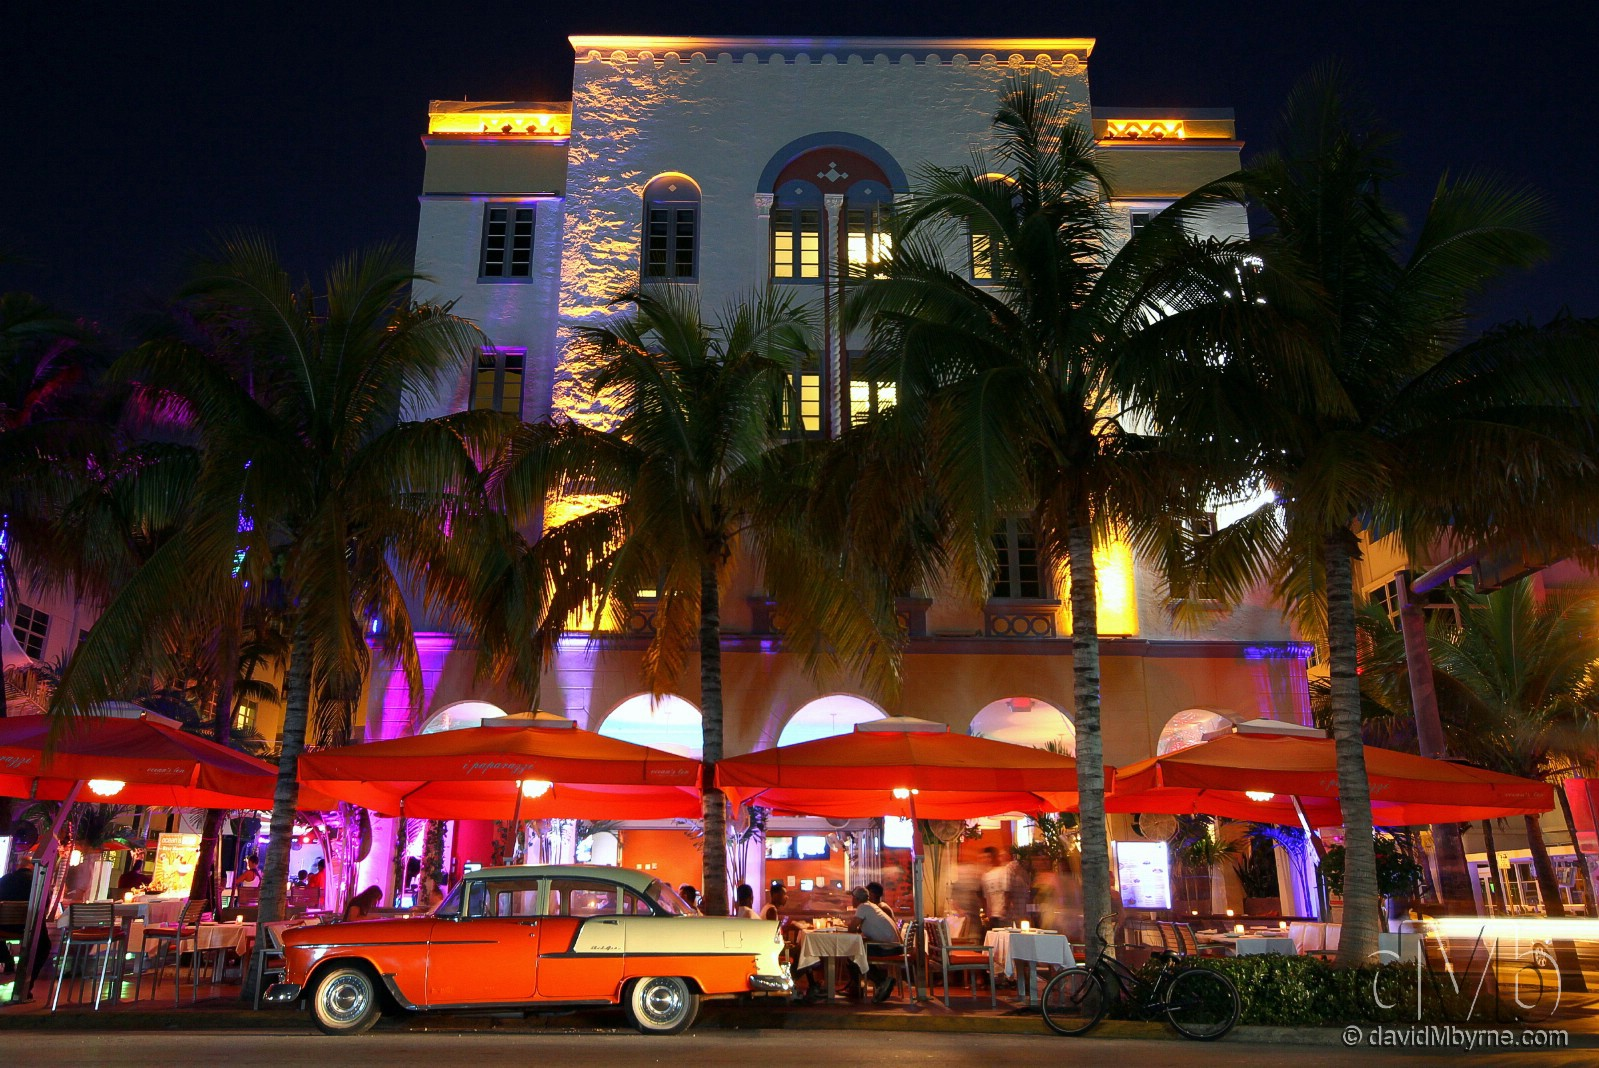 Ocean Drive, Miami, Florida, USA. July 8th, 2013 (EOS 60D || Sigma 10-20mm || 16mm, 1.6sec, f/7.1, iso400)